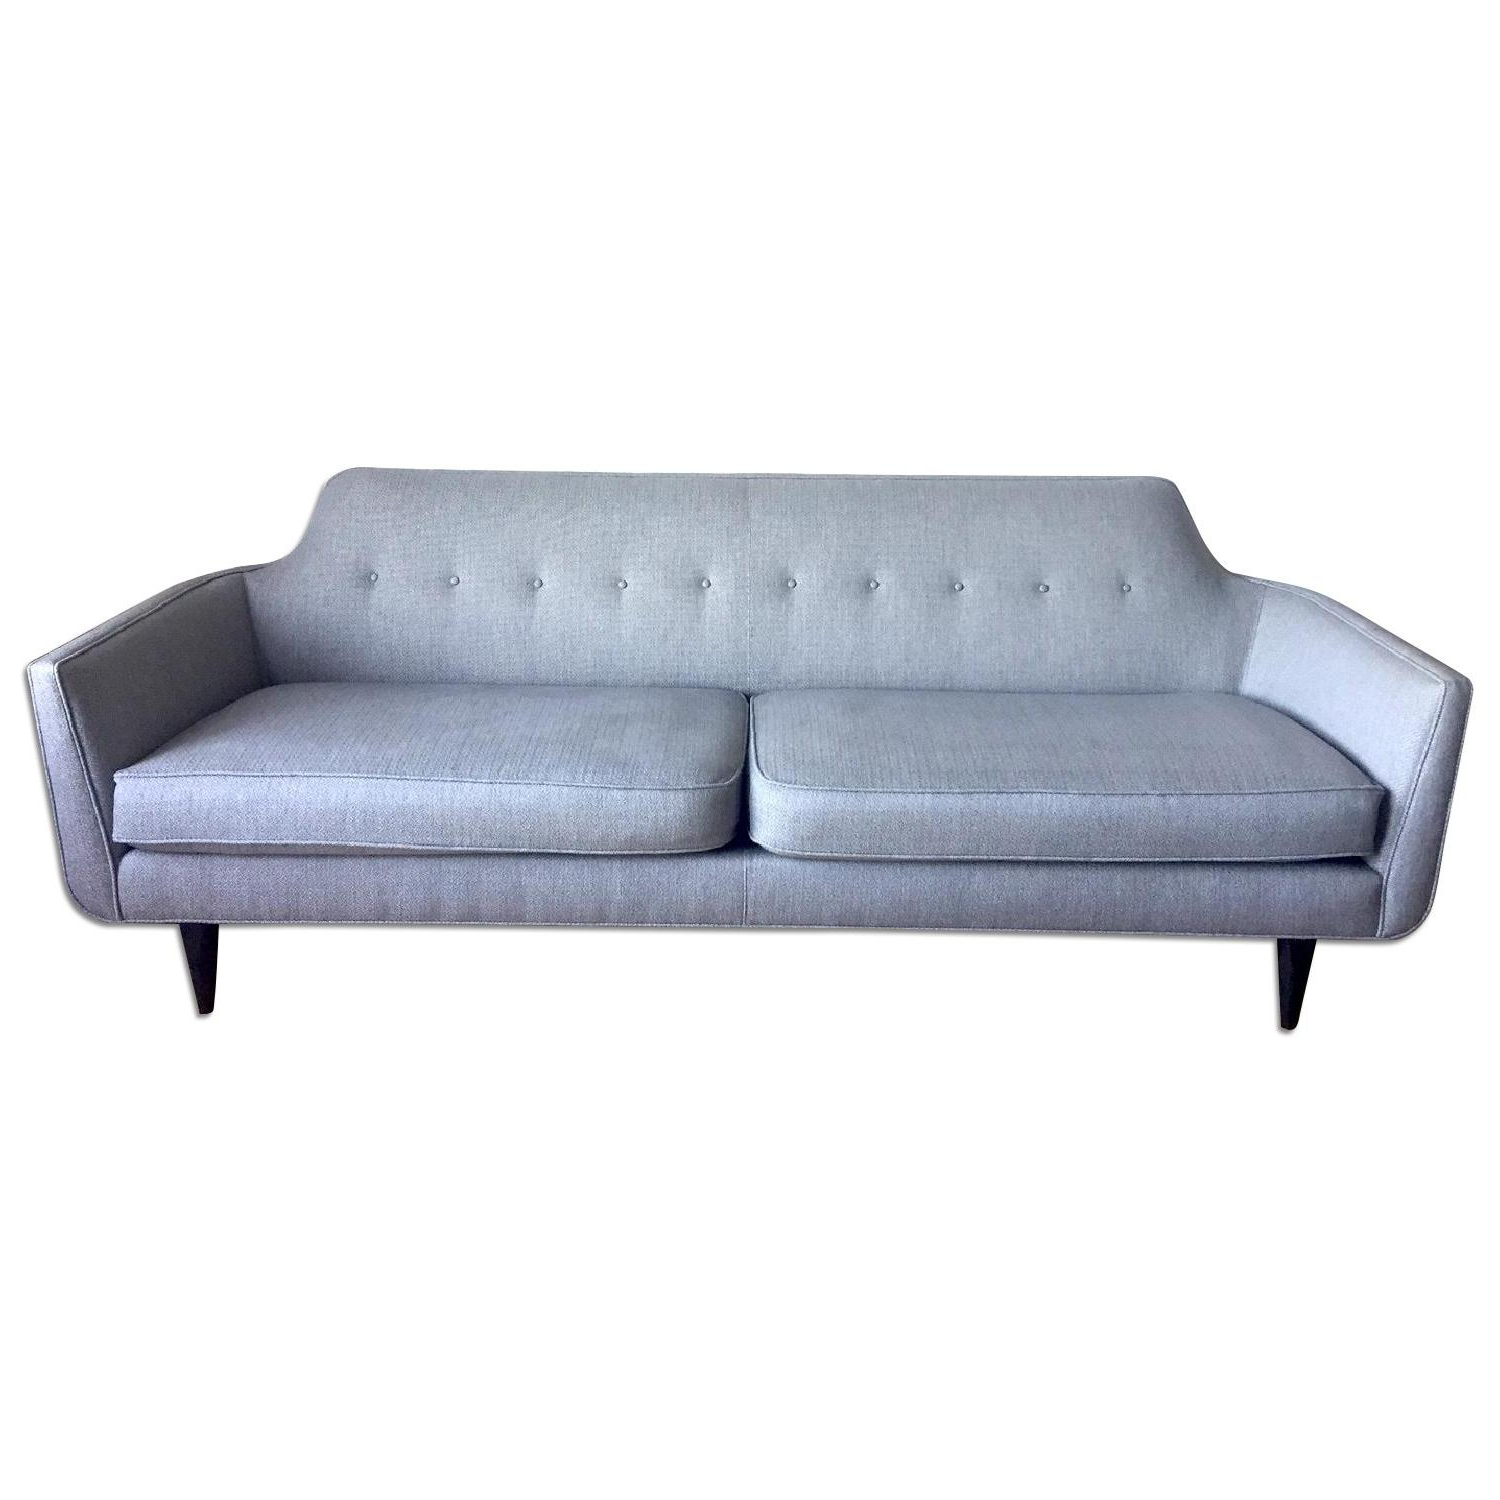 West Elm Tillary Sofa (View 18 of 20)